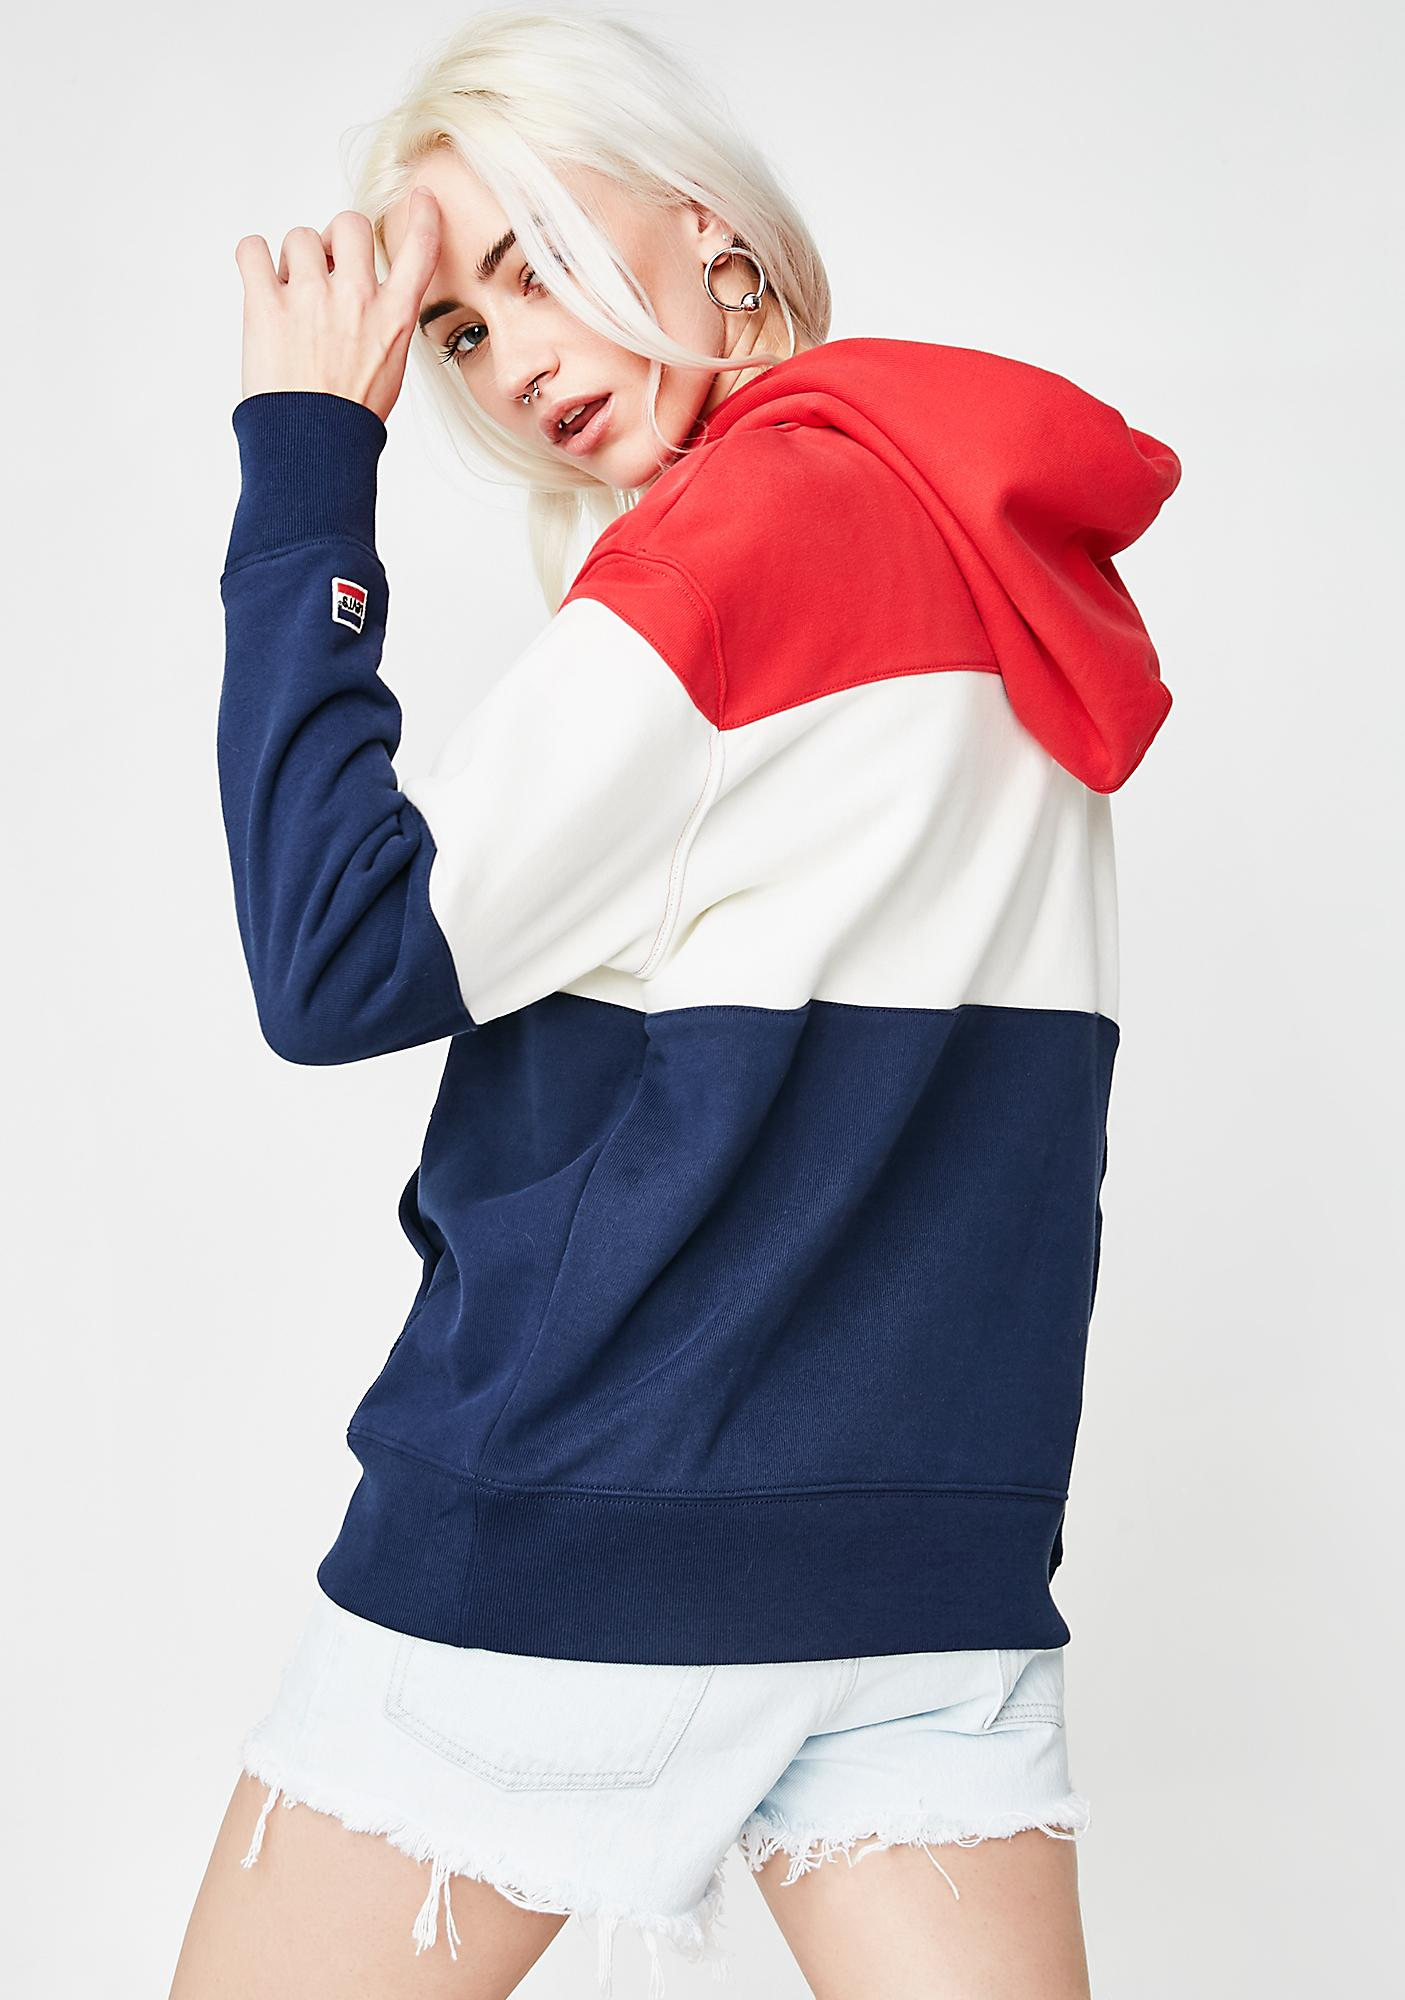 Levis Retro Colorblocked Sweatshirt